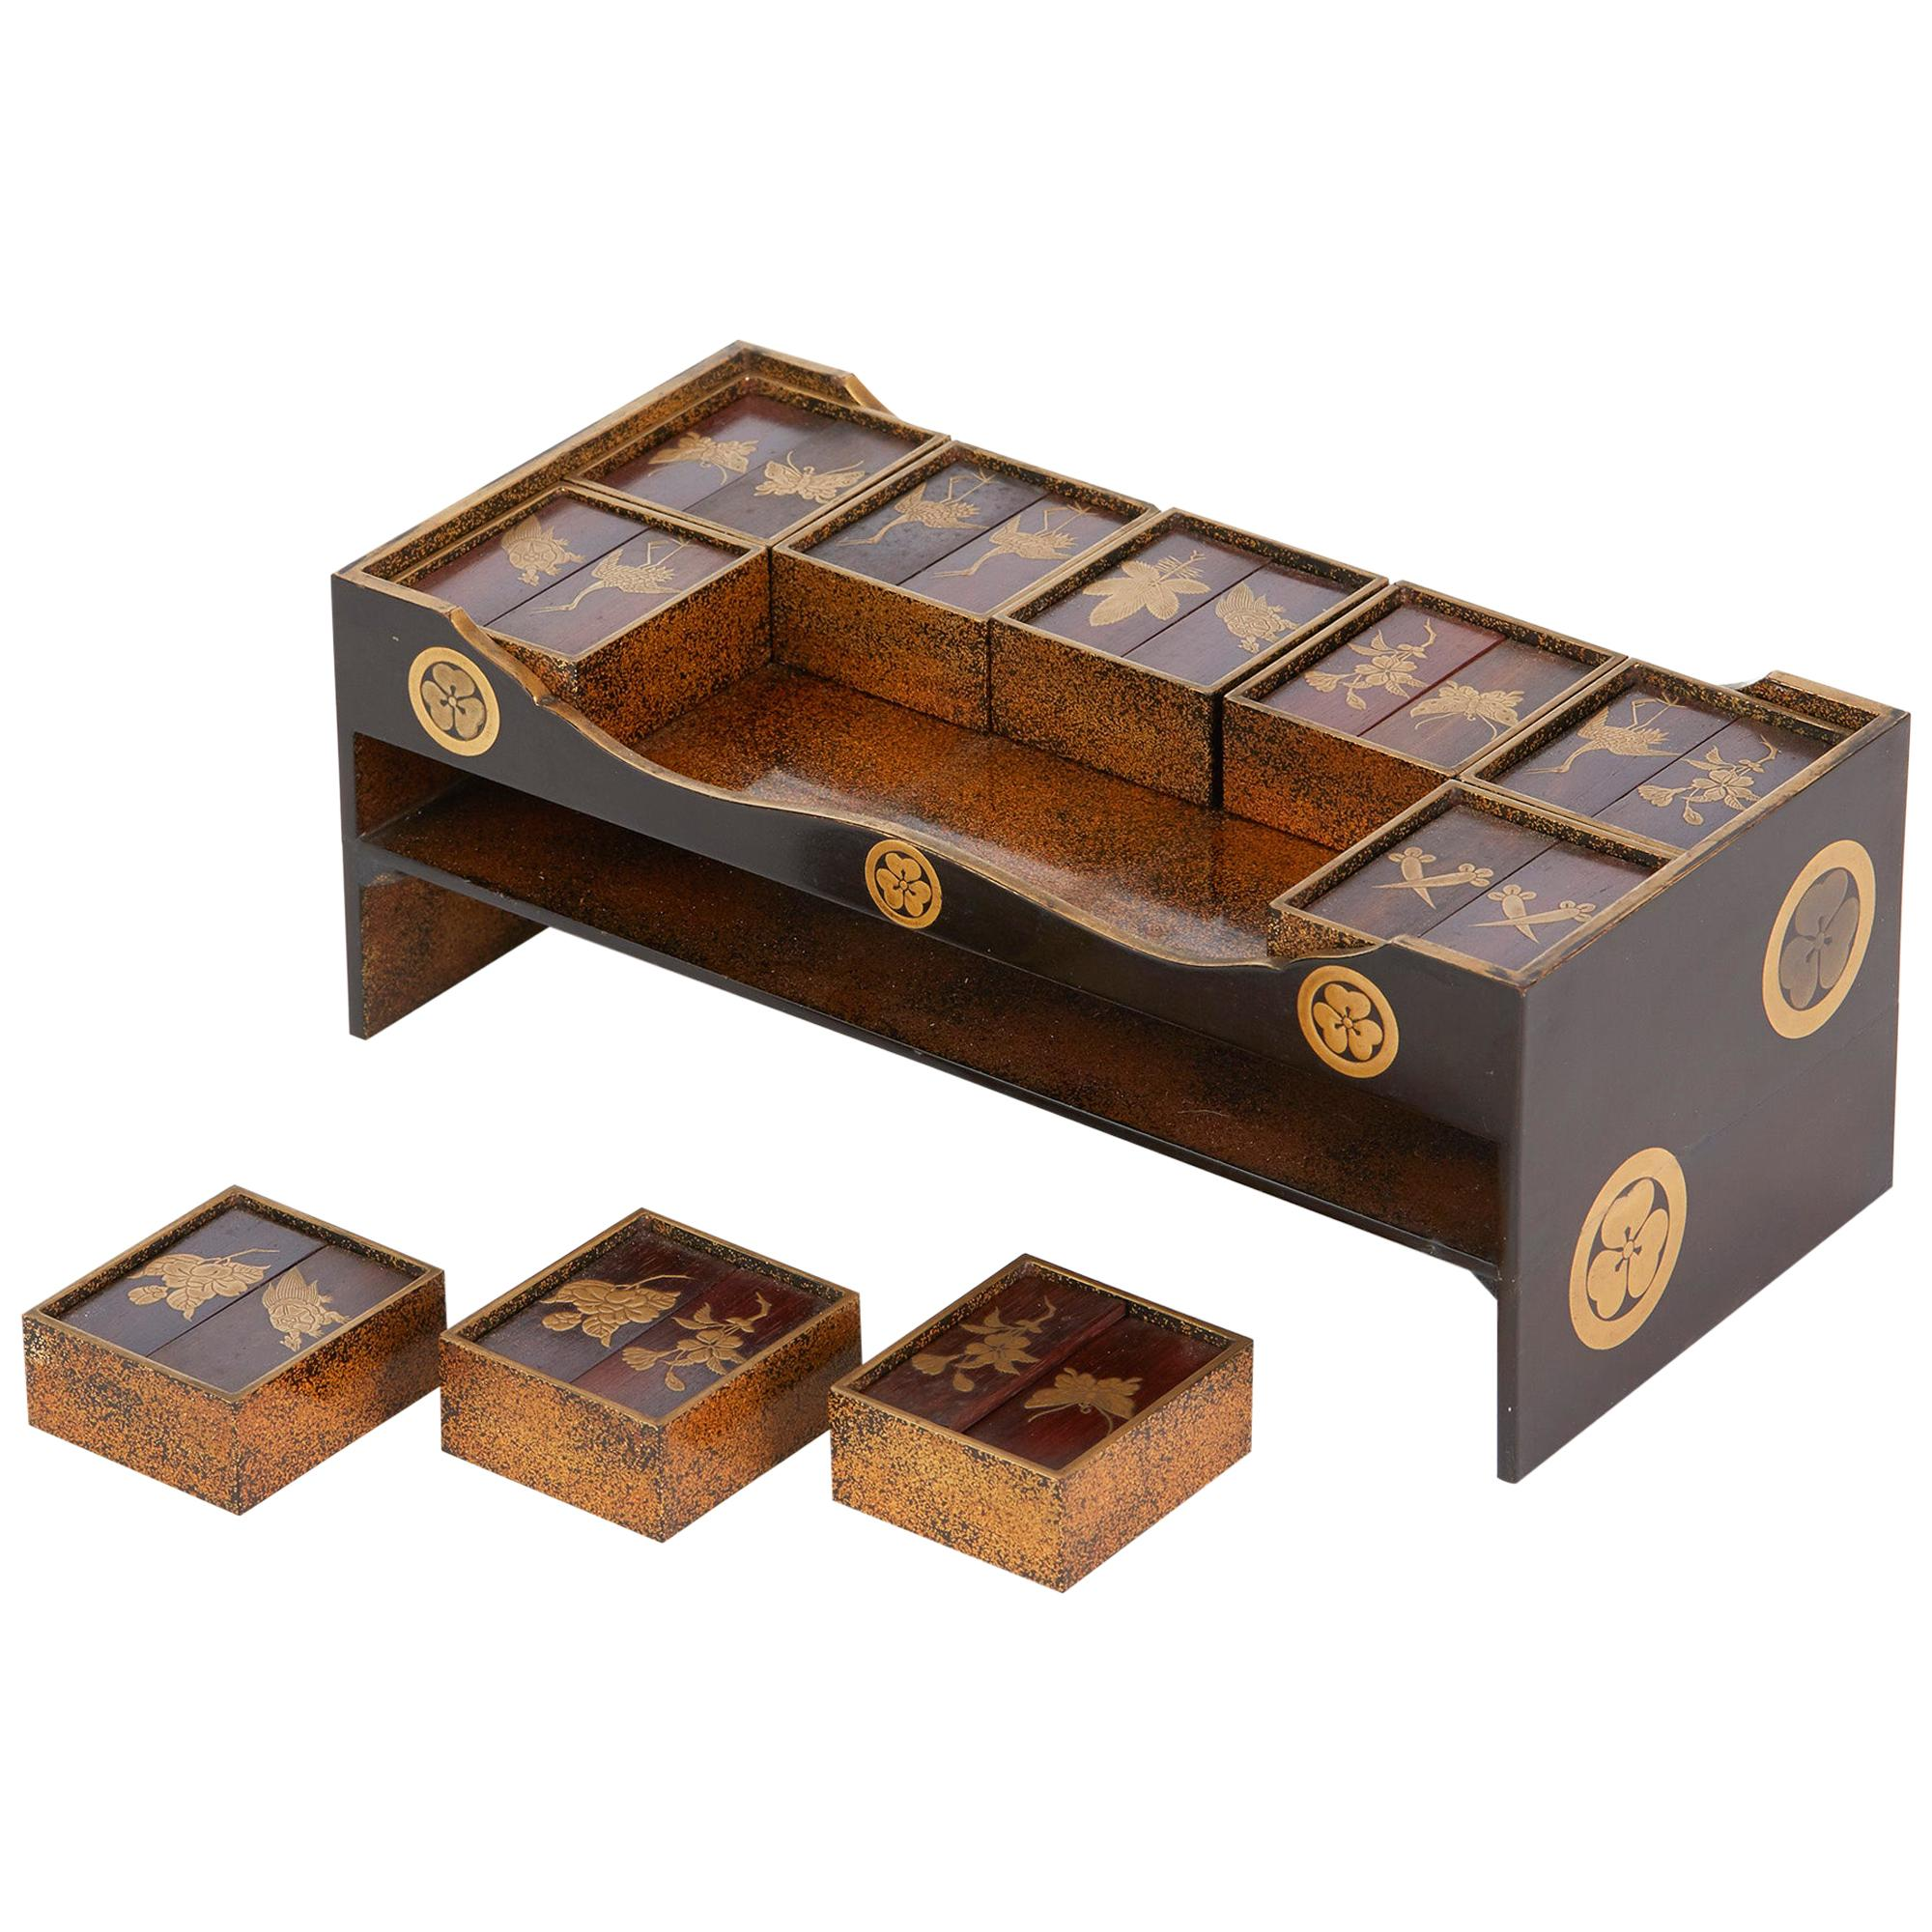 Japanese Rare Lacquered Wood Sensory Game, 19th Century